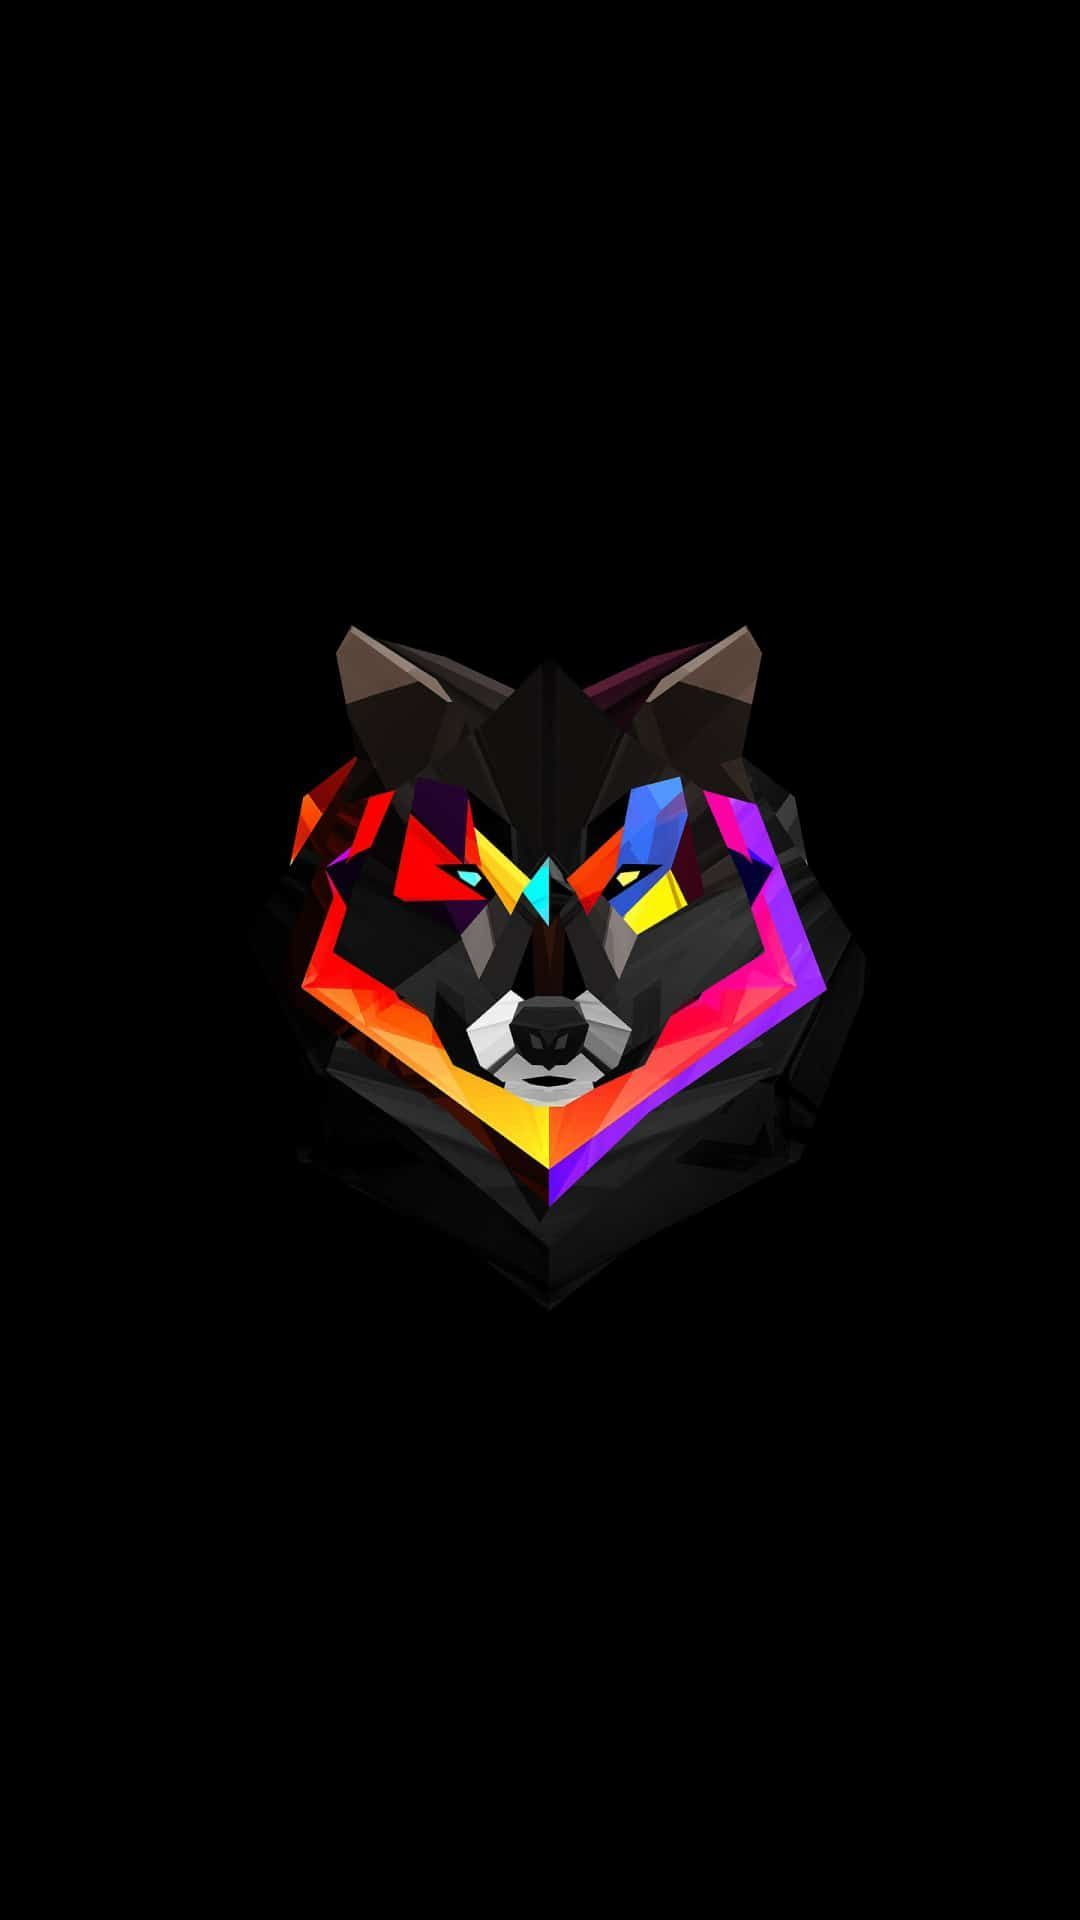 Epic Wolf Wallpaper Iphone Background For Iphone Wallpaper On Hupages Com If You Like It Dont Forget Save It Or Wolf Wallpaper Abstract Wolf Logo Wallpaper Hd